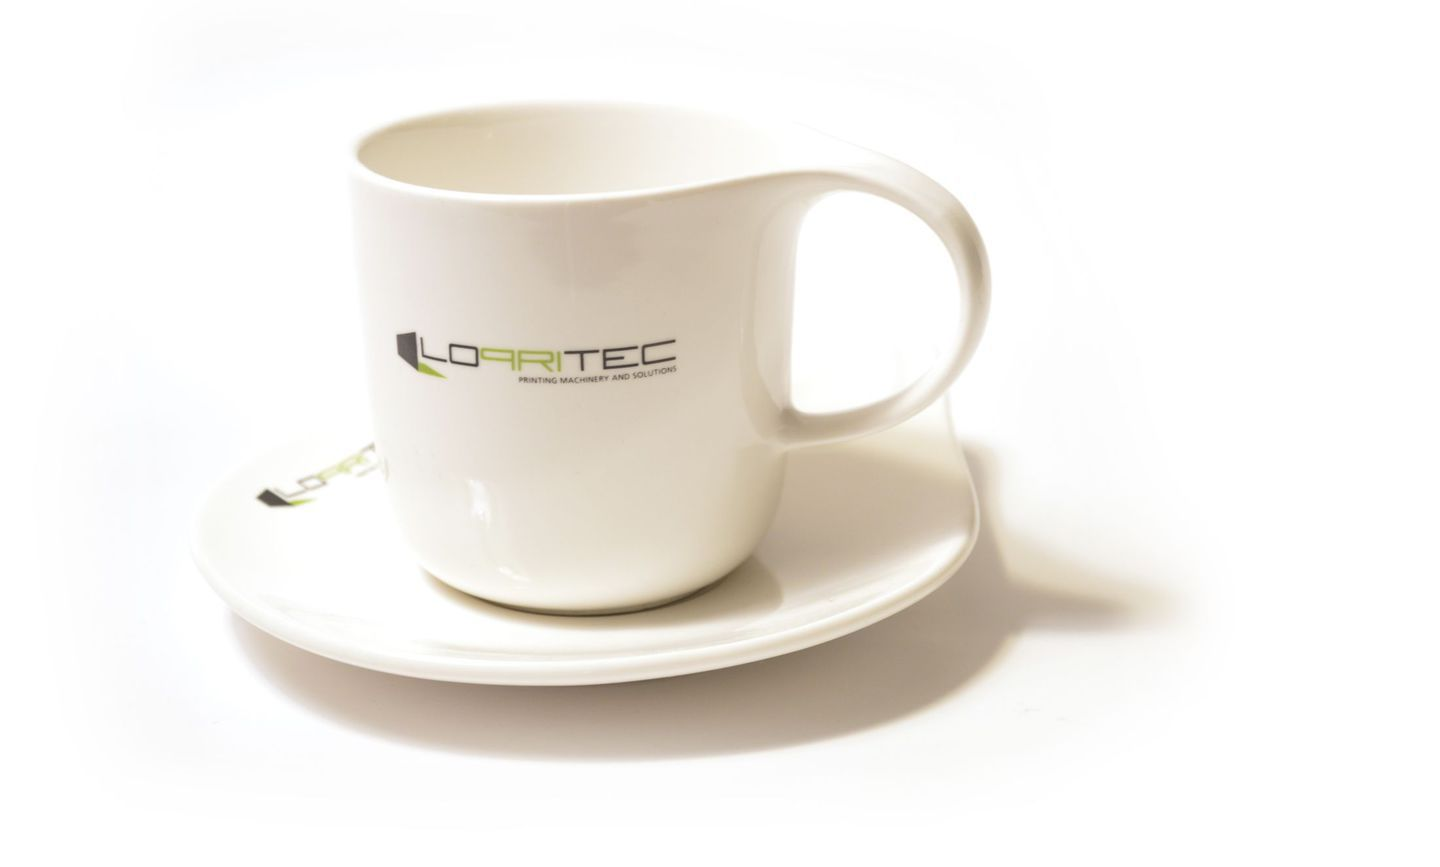 Lopritec coffee ware